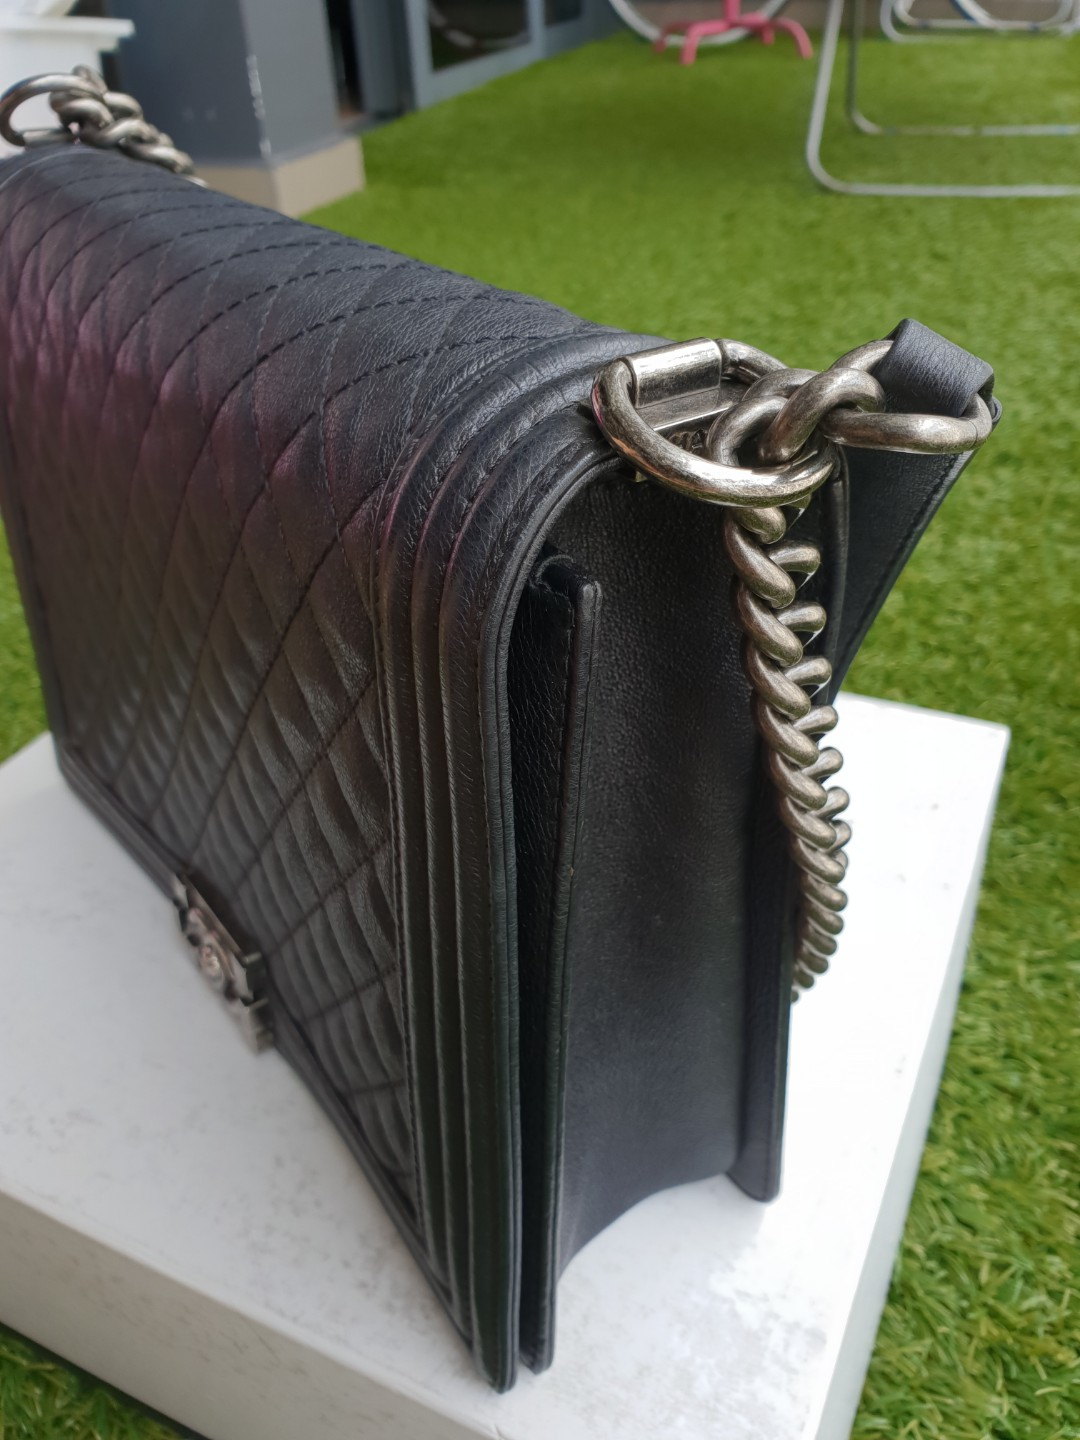 24de2de8229f Chanel Boy Large in Grey Metallic Calfskin RHW, Luxury, Bags & Wallets,  Handbags on Carousell